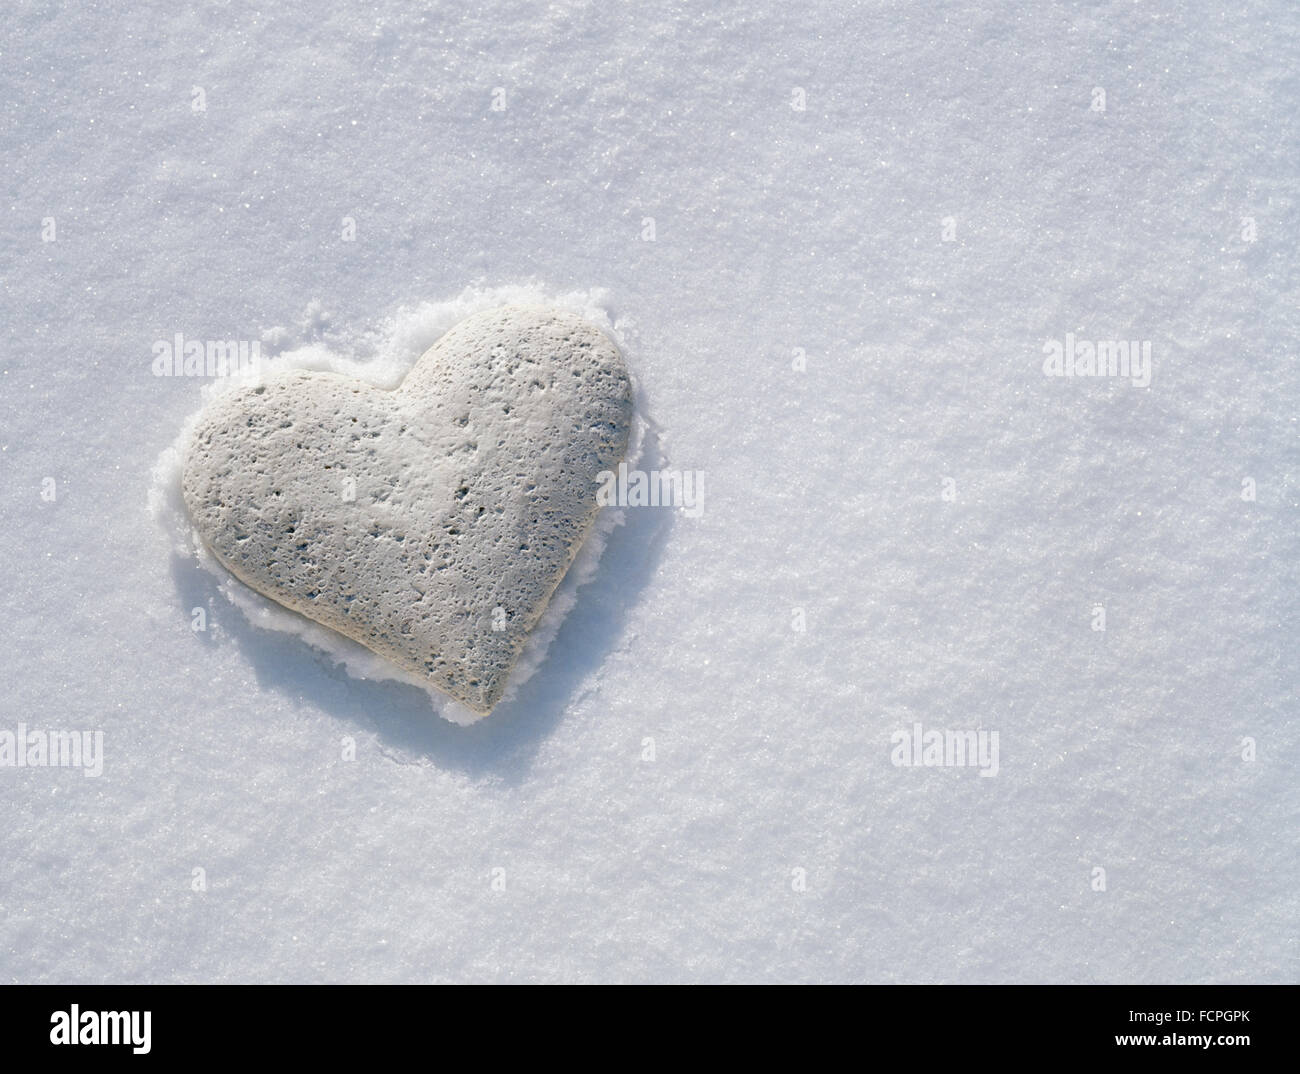 White stone heart resting on frozen crust of pristine snow. - Stock Image